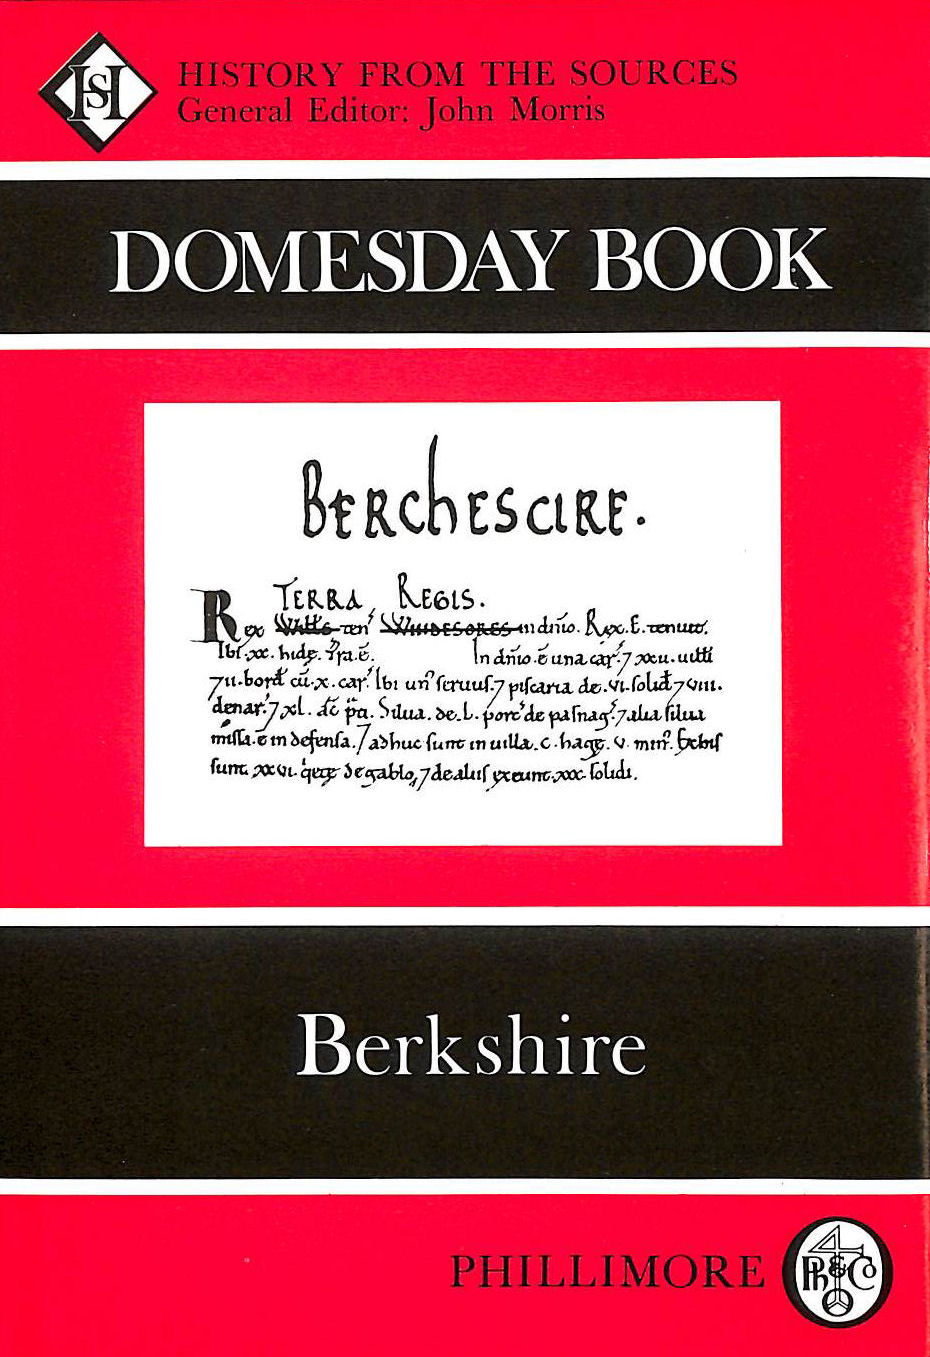 Image for The Domesday Book: Berkshire